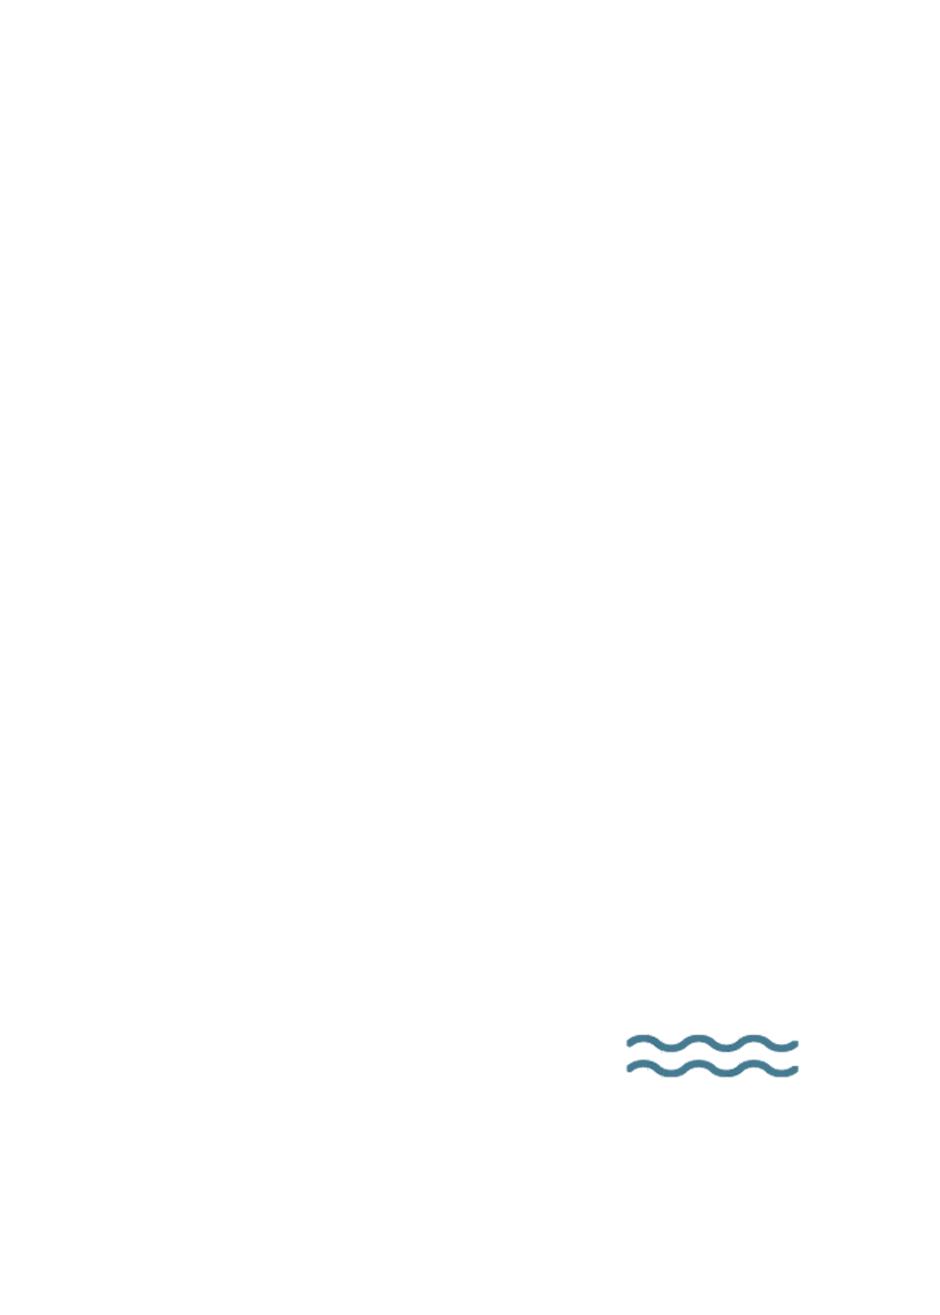 HighEdWeb Annual Conference 2019 Oct 13–16 #heweb19 Milwaukee